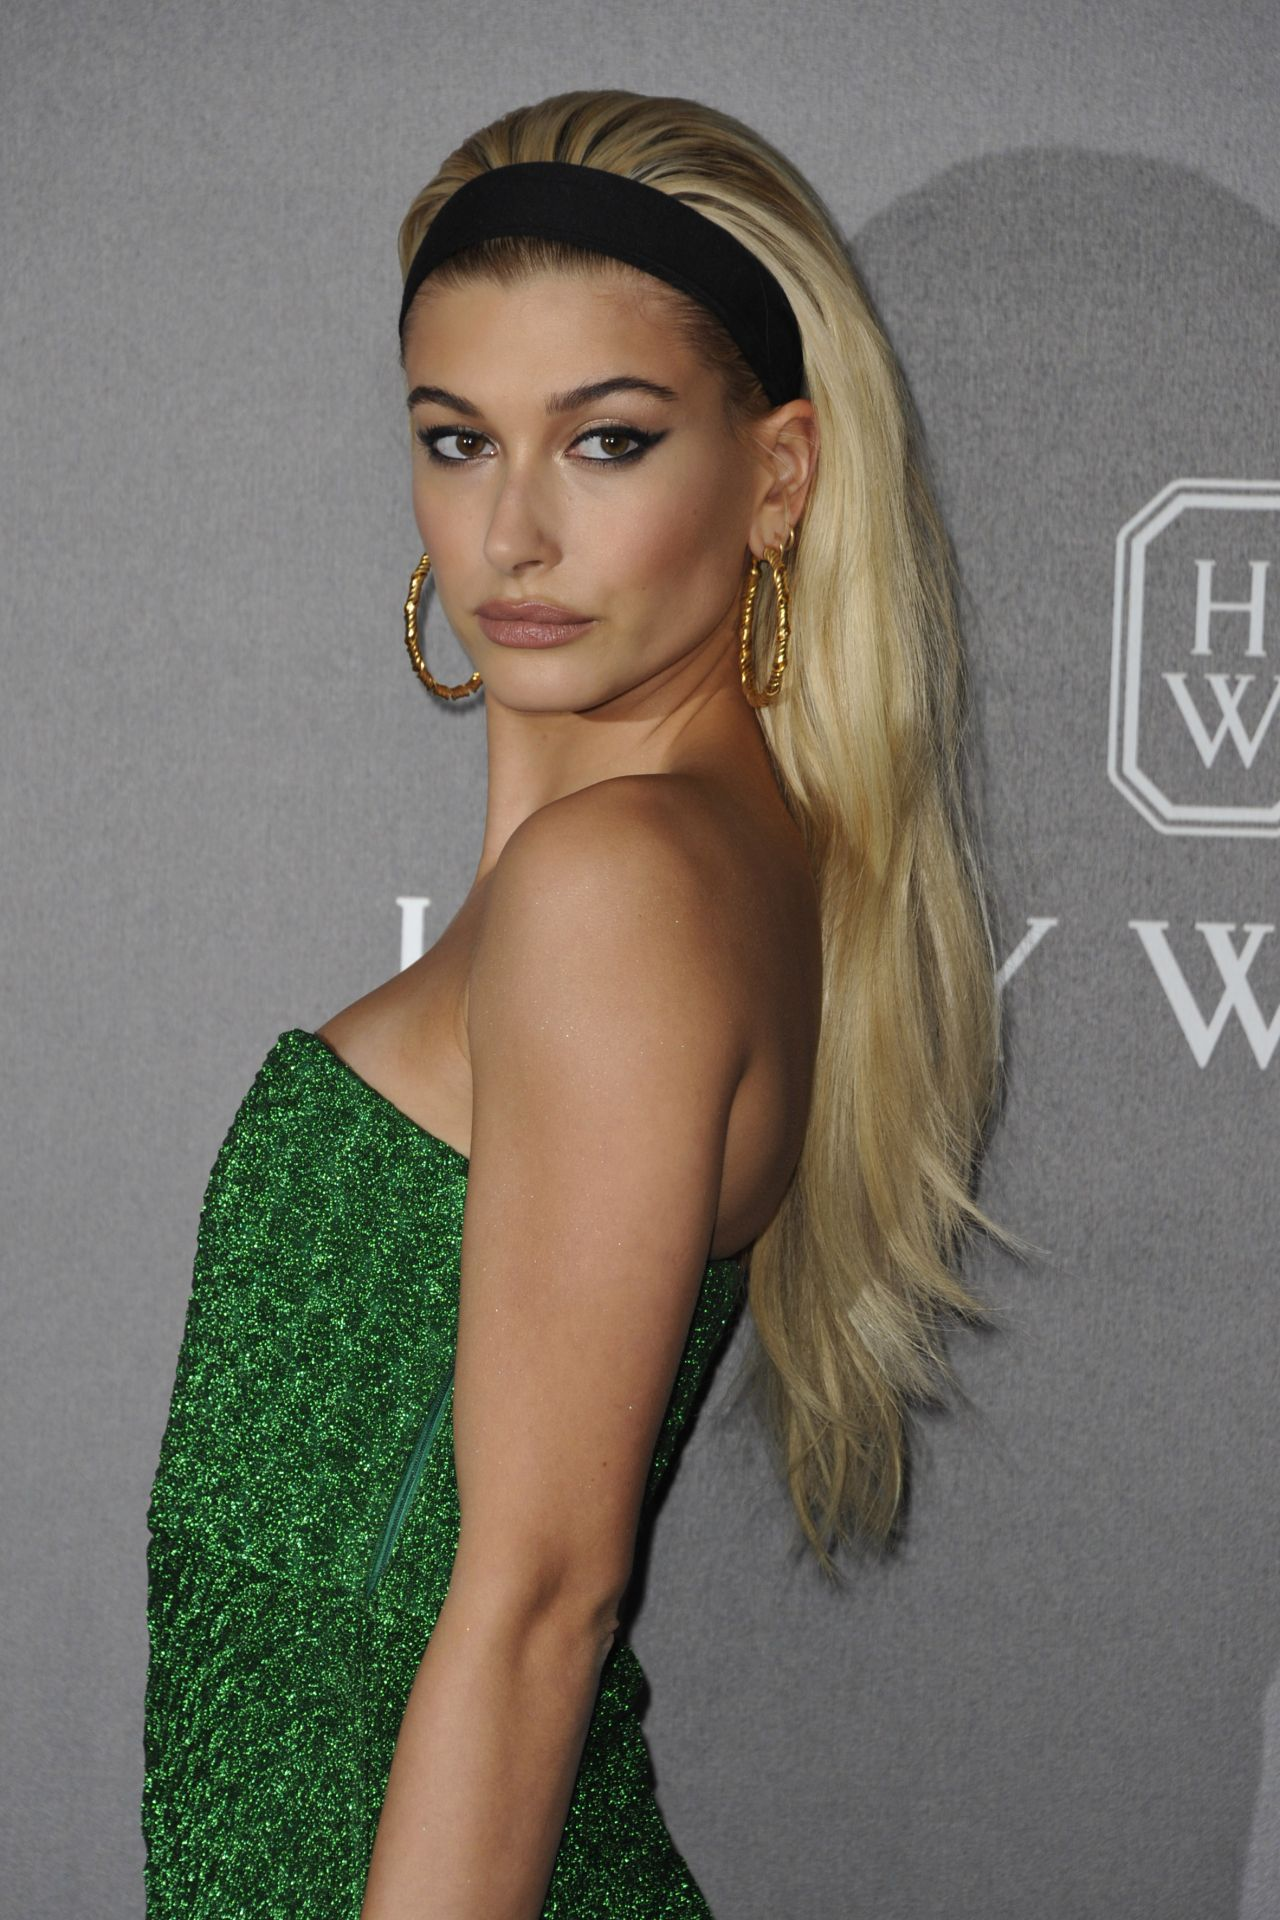 hailey baldwin - photo #5